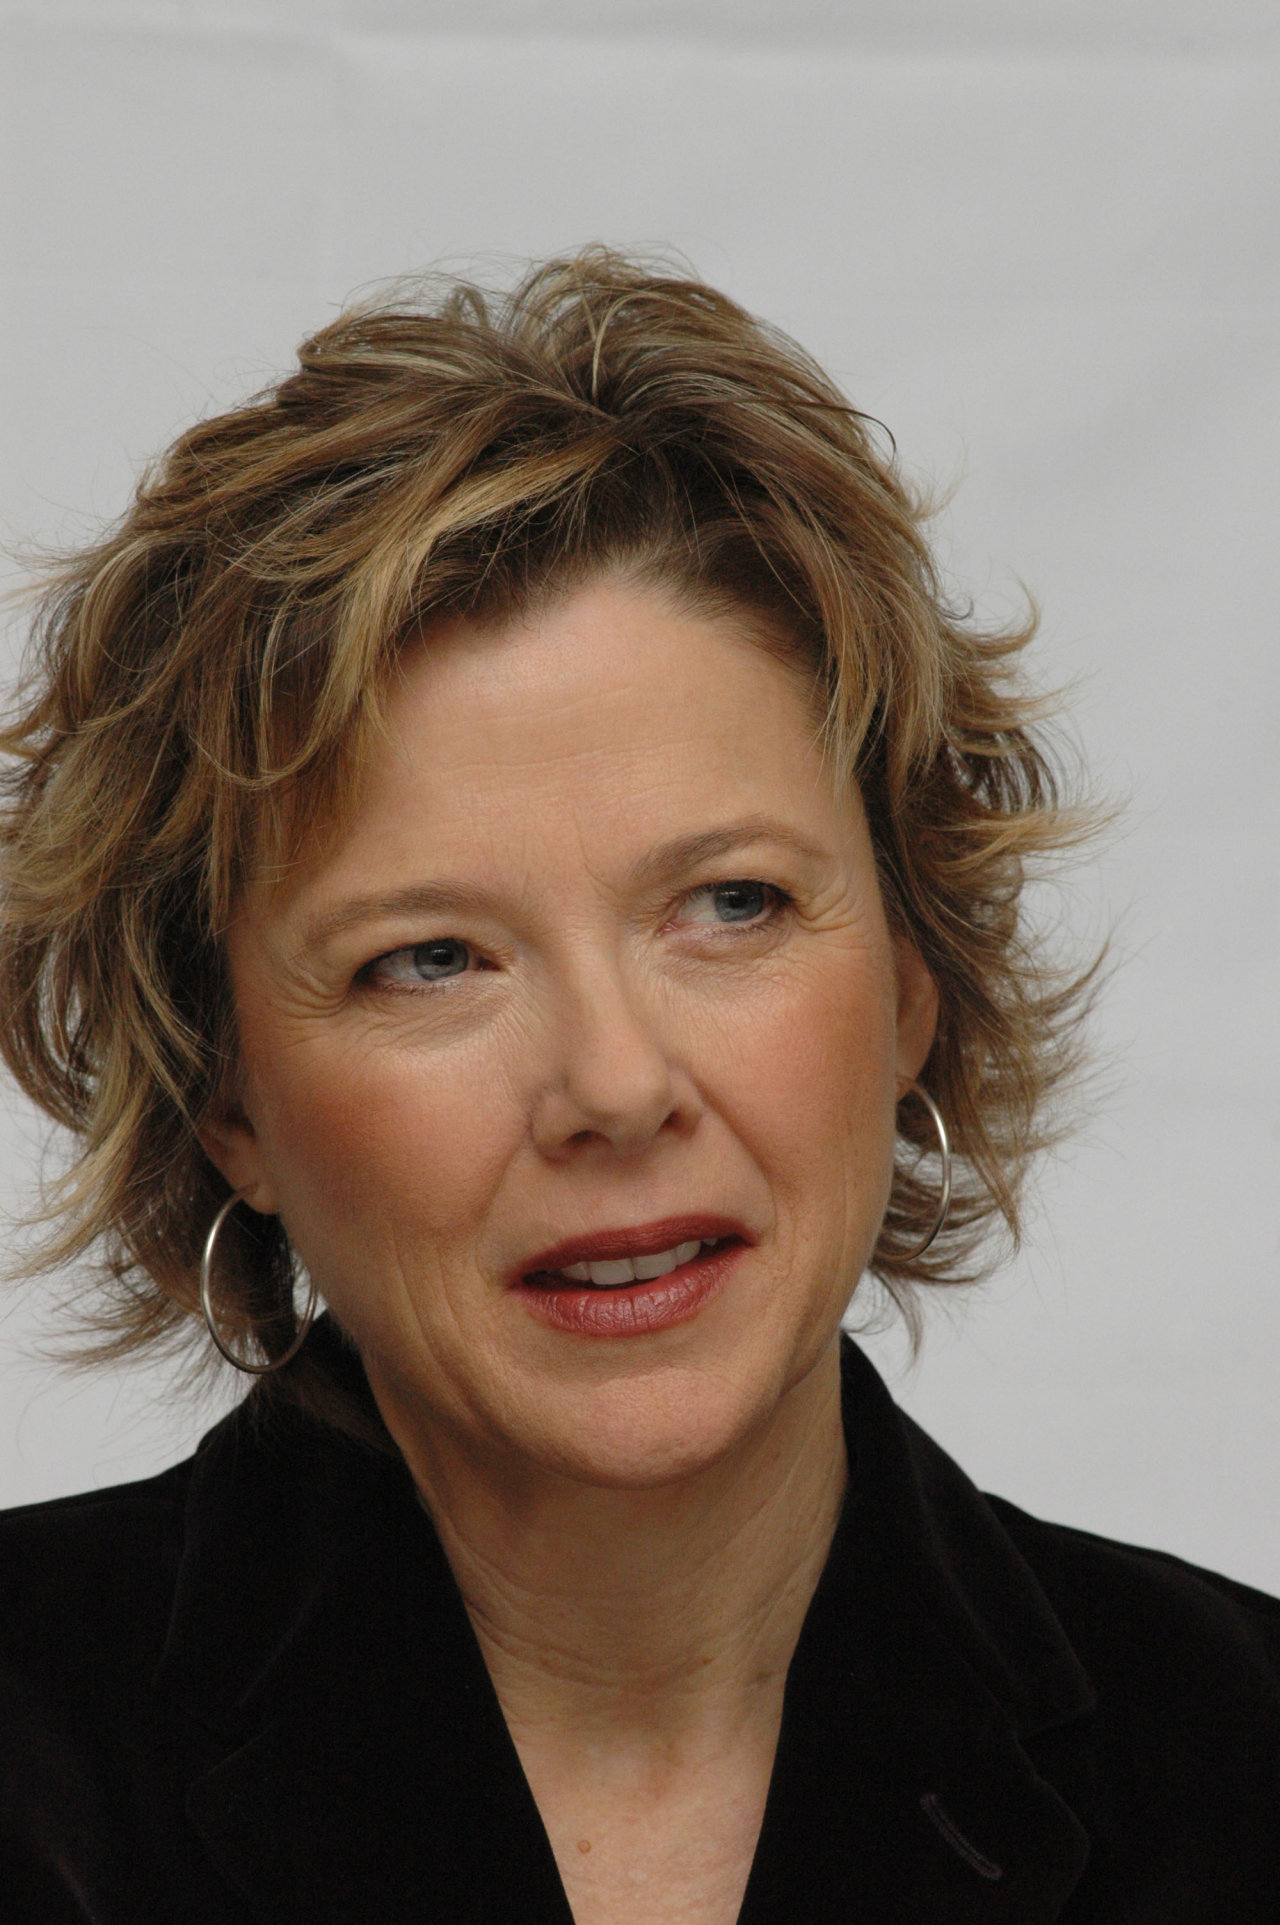 Annette Bening - Wallpaper Colection